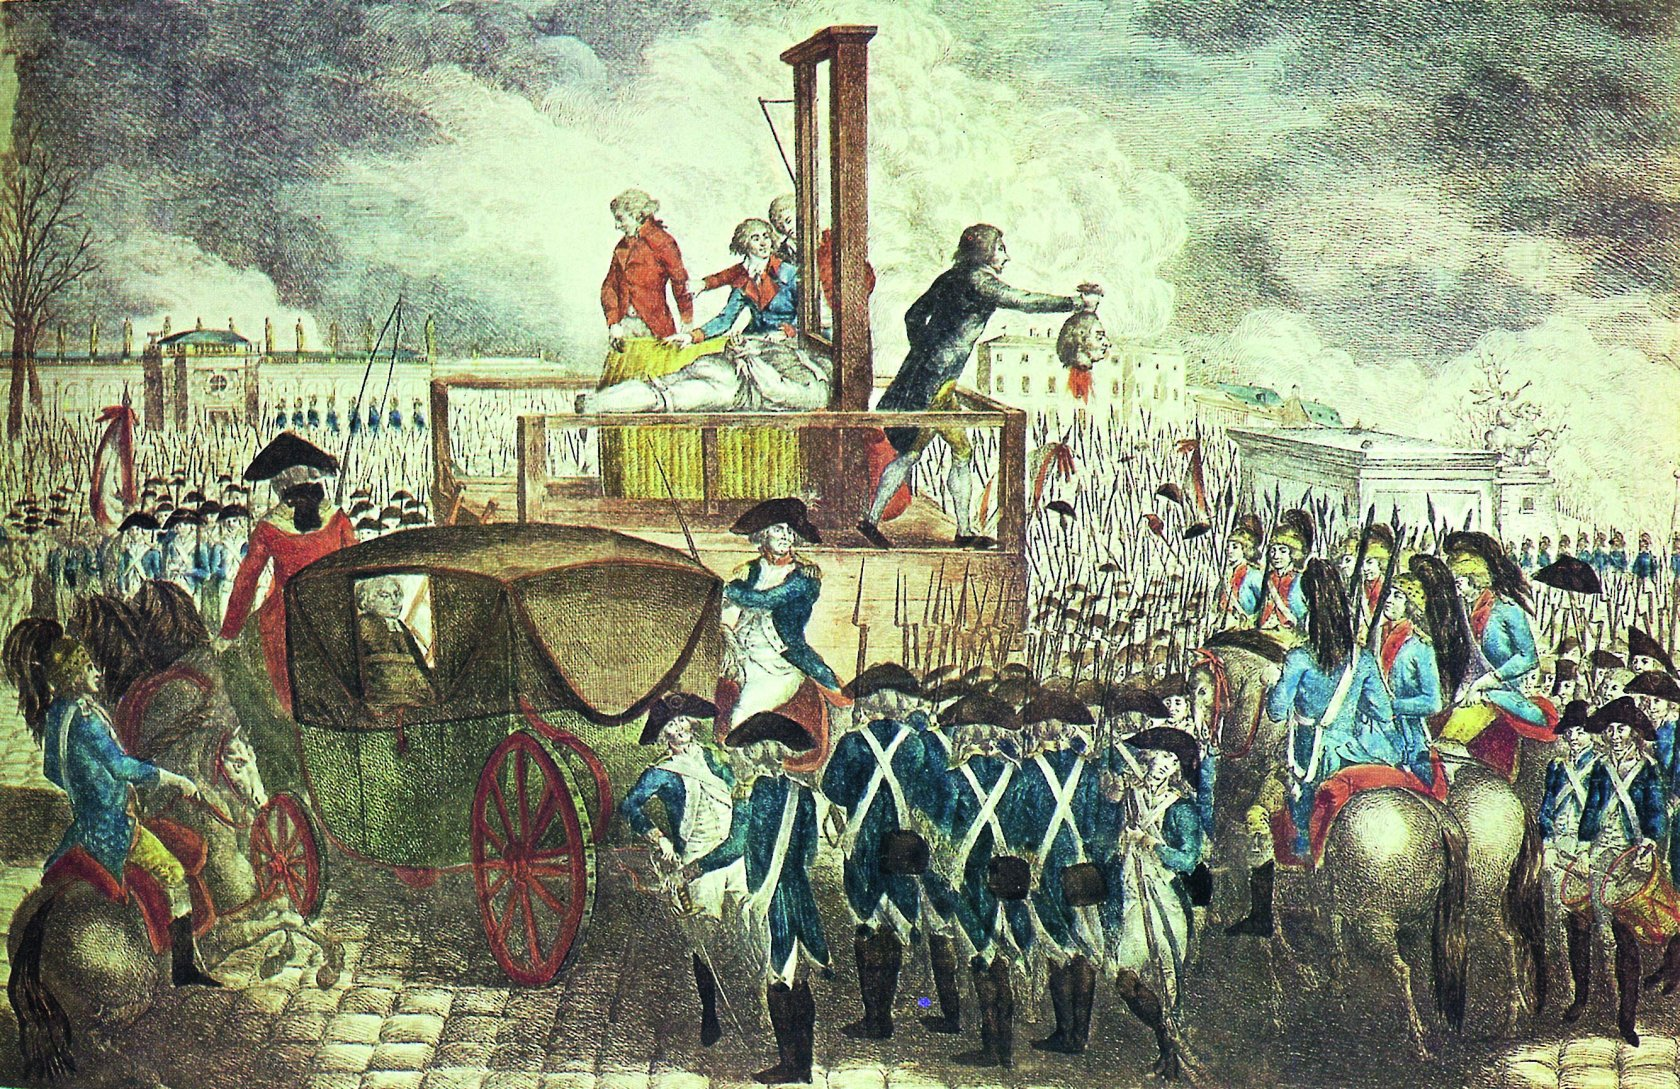 the negotiated revolution Start studying treaty of paris learn vocabulary, terms, and more with flashcards, games, and other study tools.